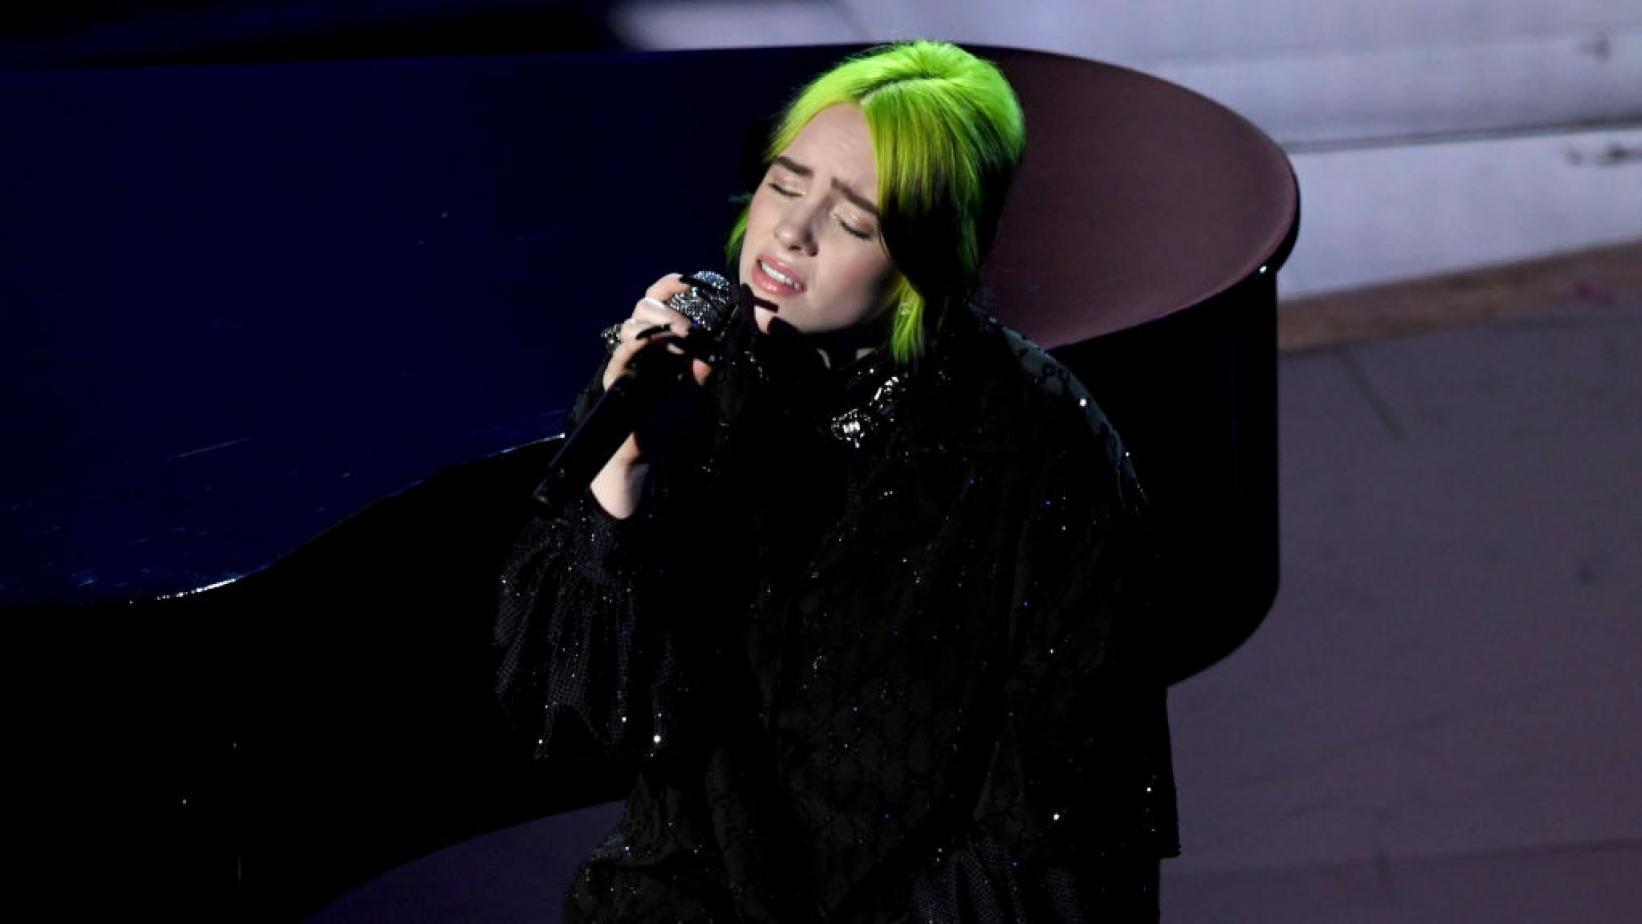 Billie Eilish Covers 'Yesterday' at The Oscars